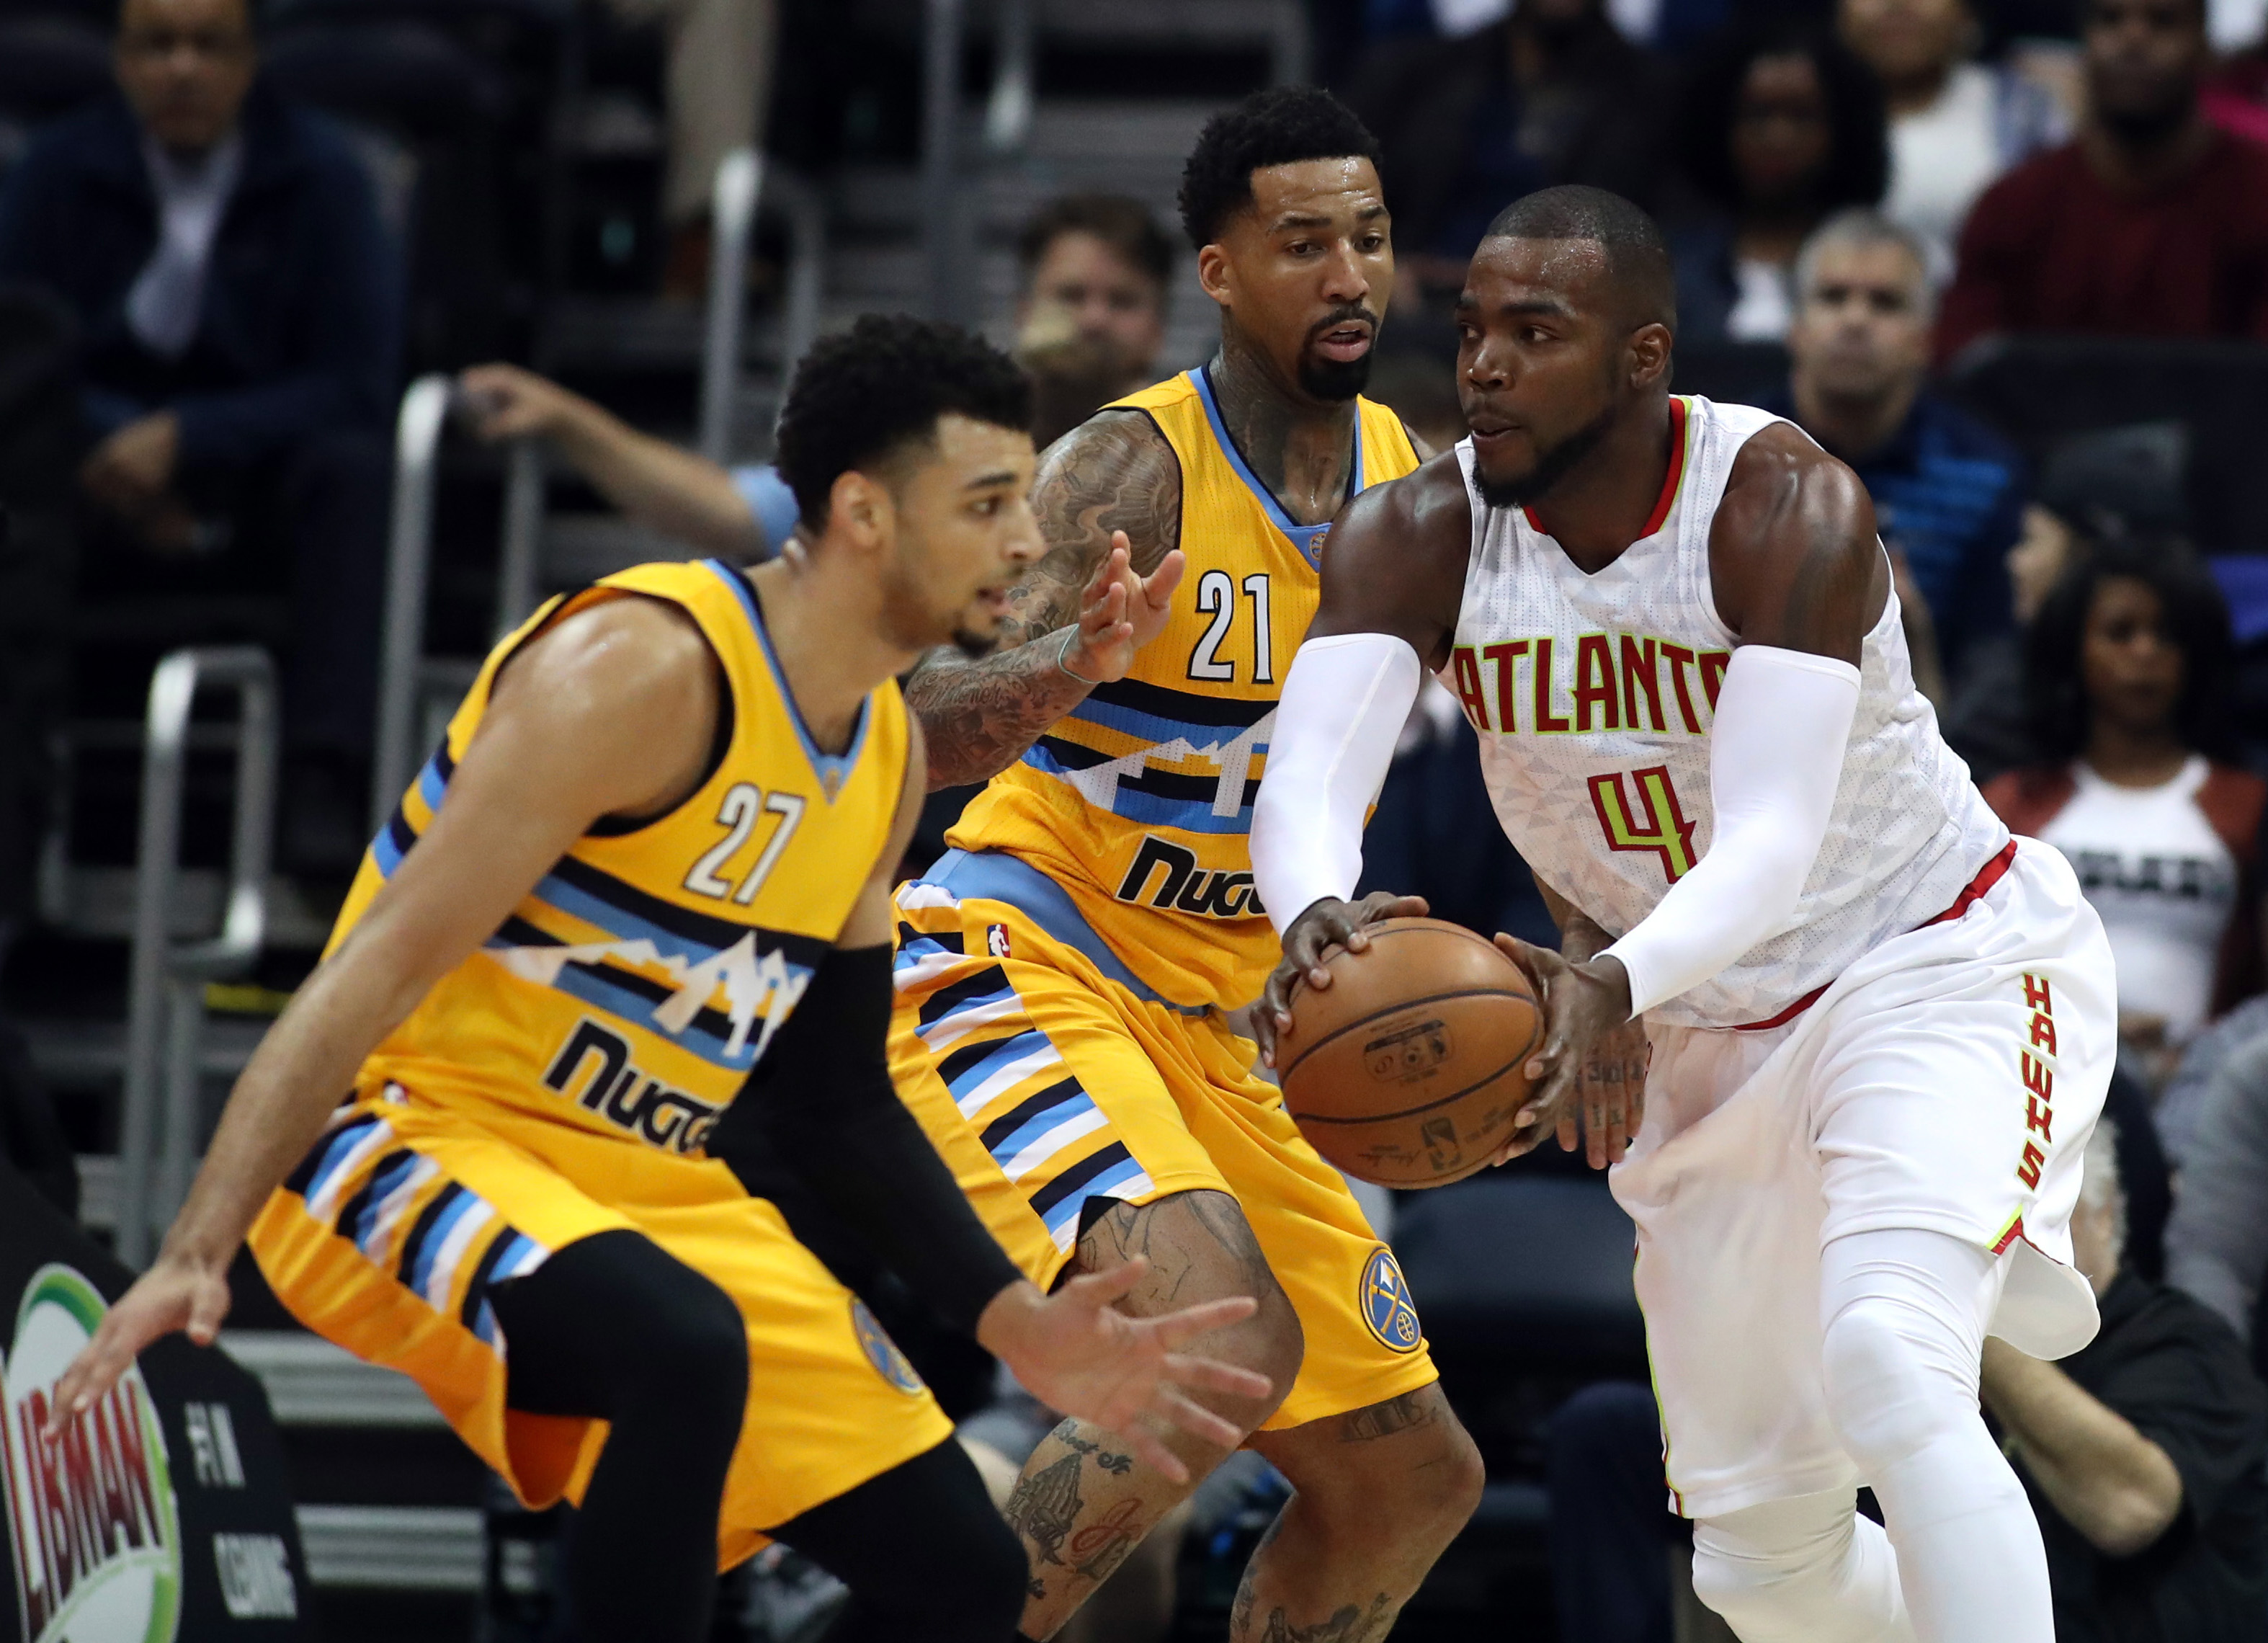 9866046-nba-denver-nuggets-at-atlanta-hawks